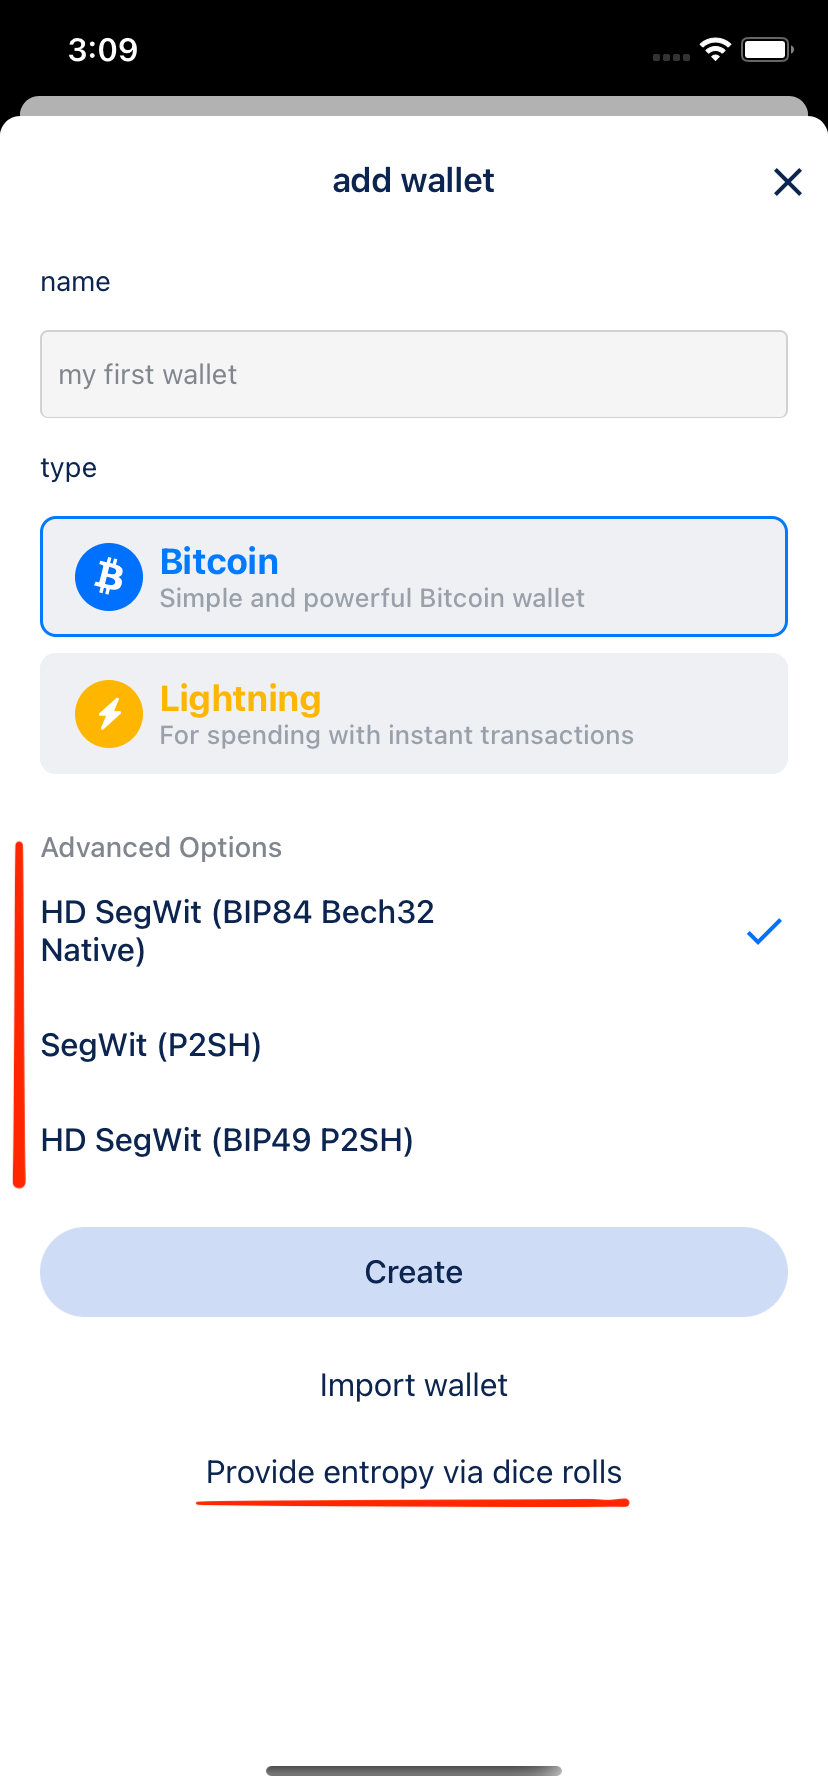 Add Bitcoin wallet with advanced options